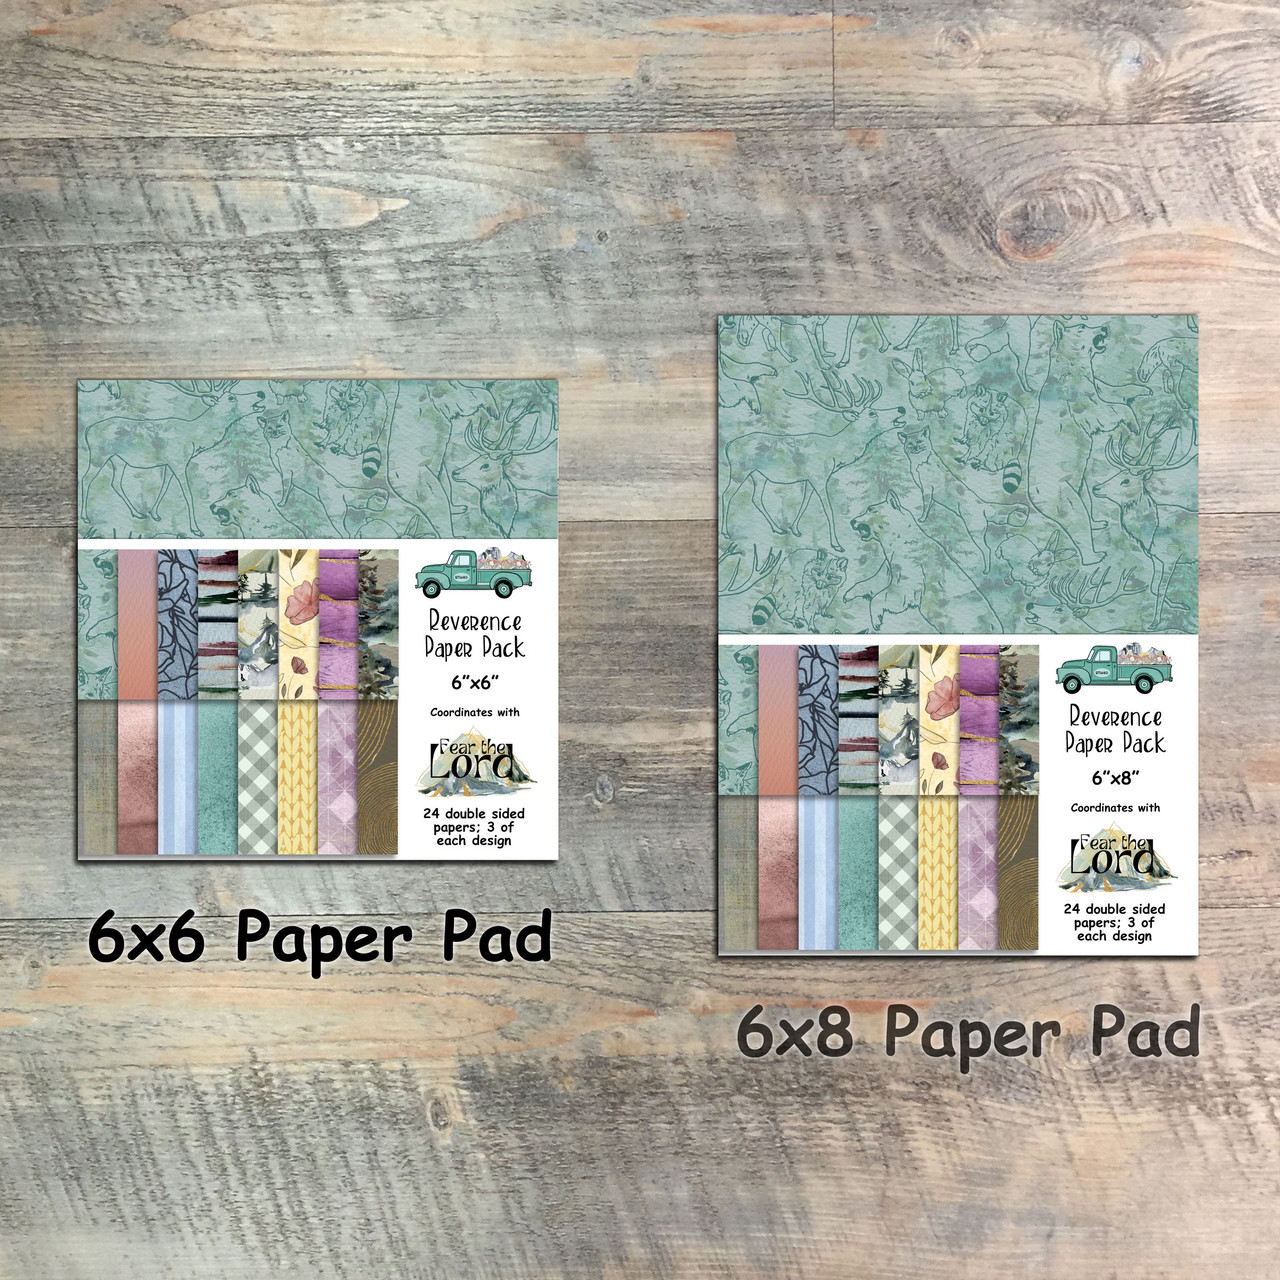 Fear the Lord - Reverence Paper Collection - 24 Double Sided 6x6 or 6x8 Papers